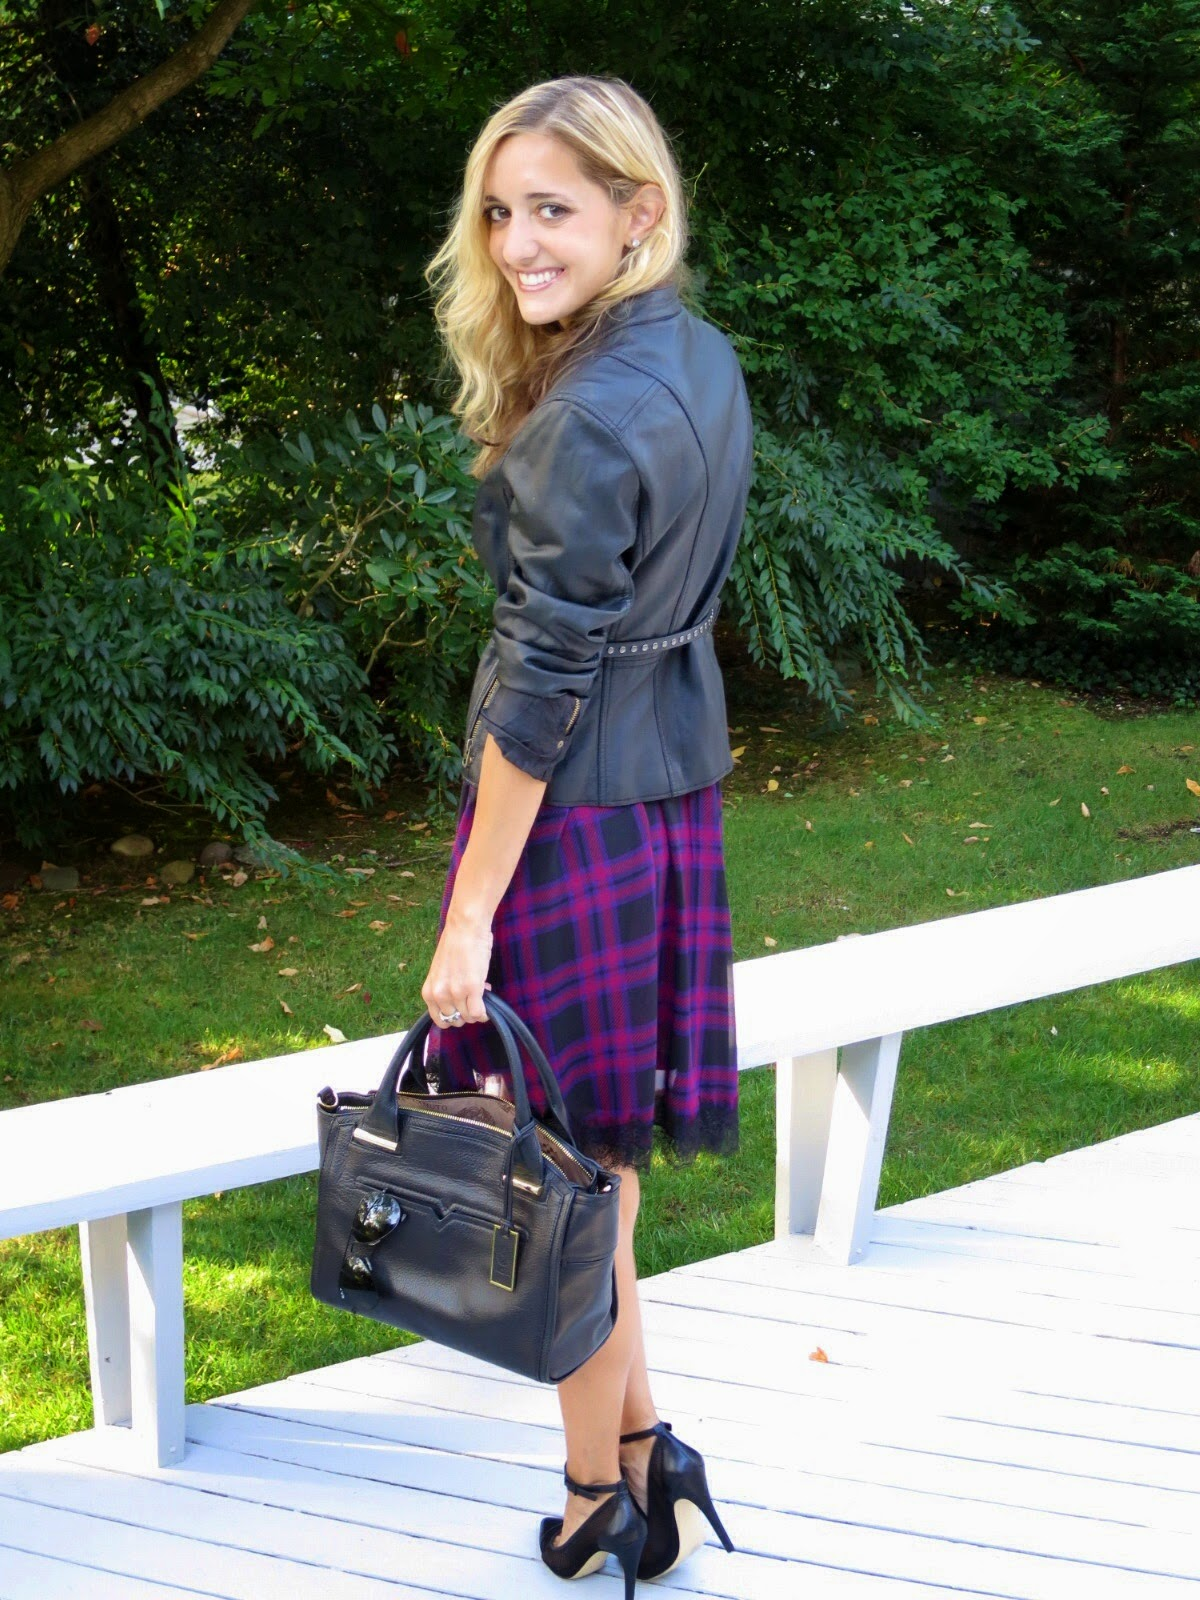 plaid & leather outfit